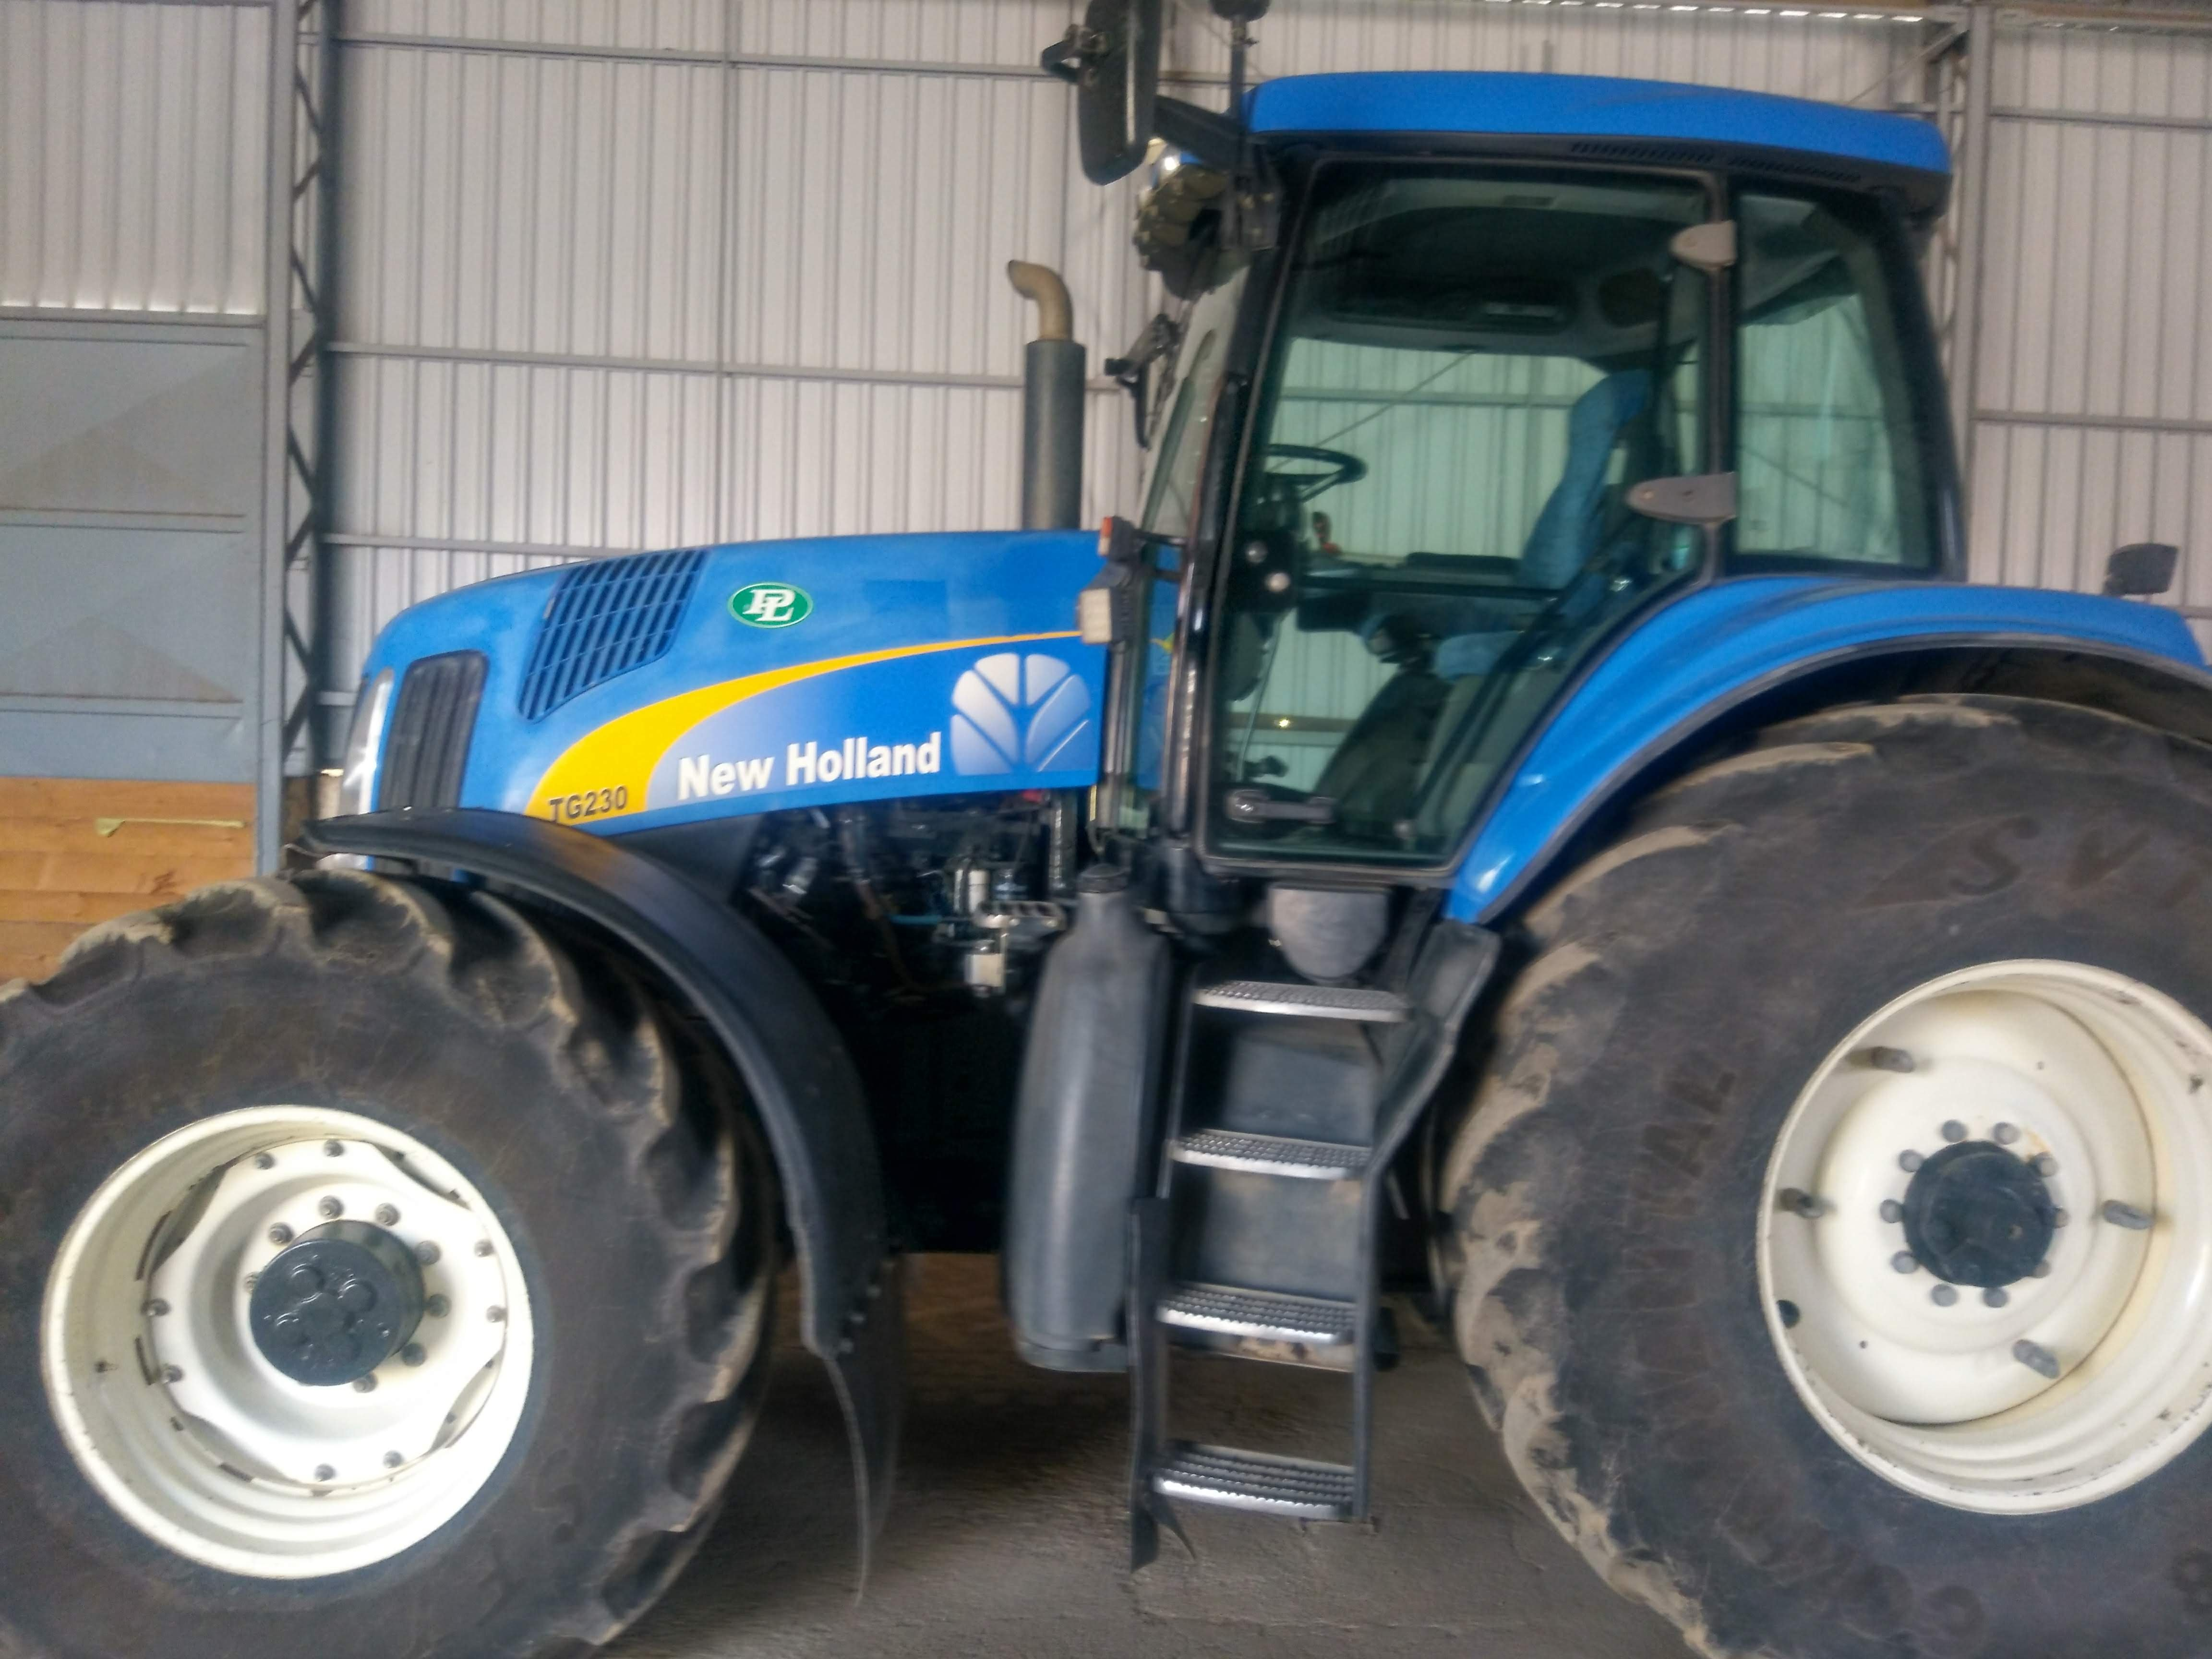 New Holland TG 230